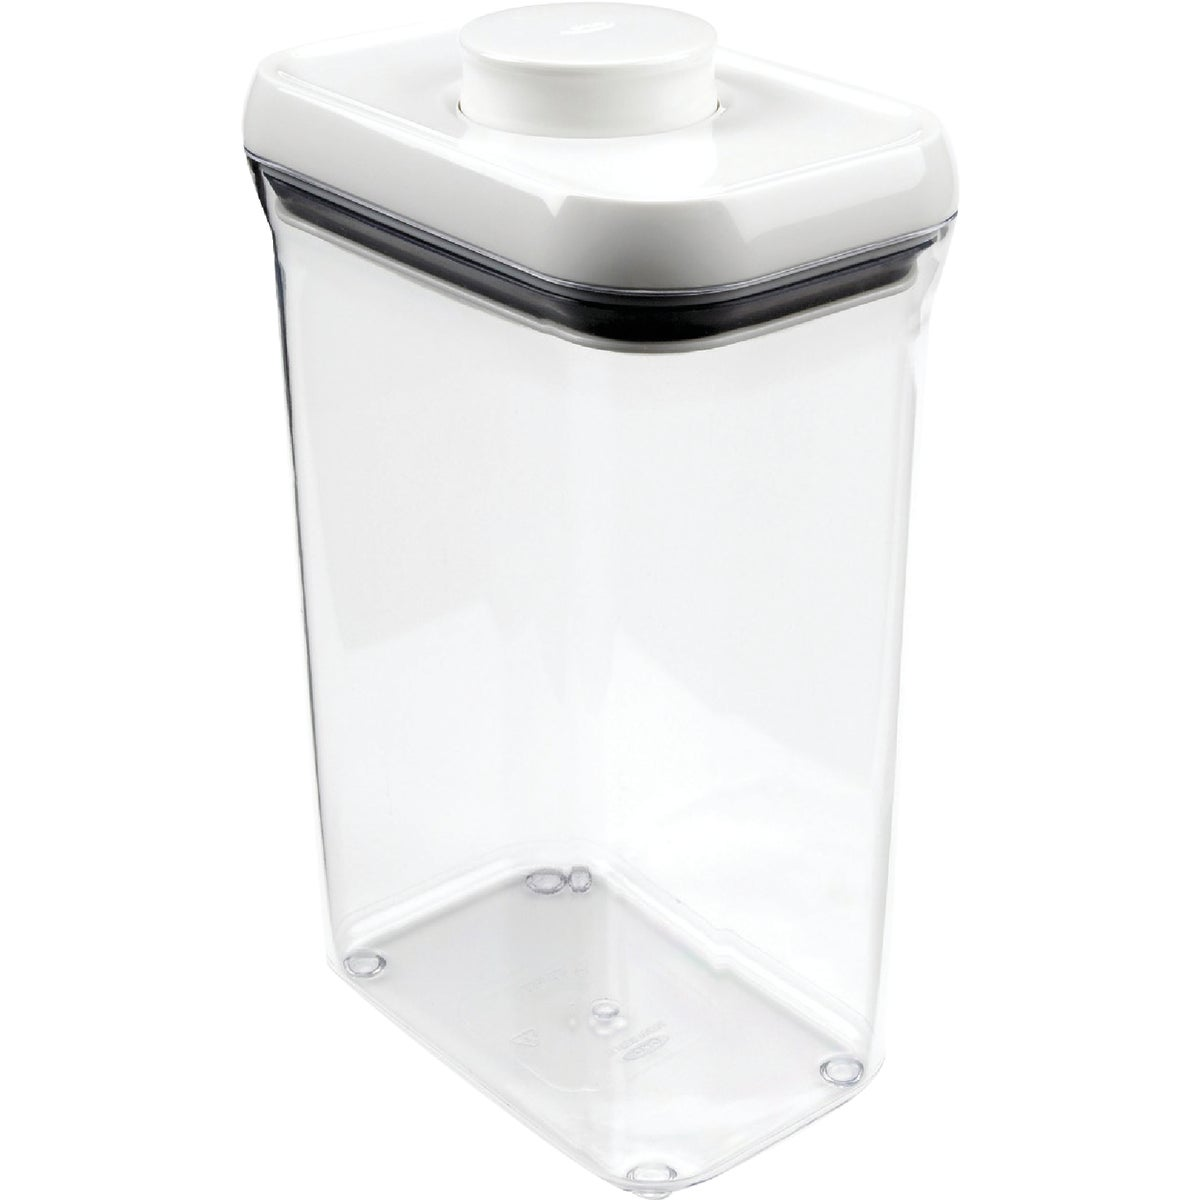 2.5QT RECT POP CONTAINER - 1071397 by Oxo International